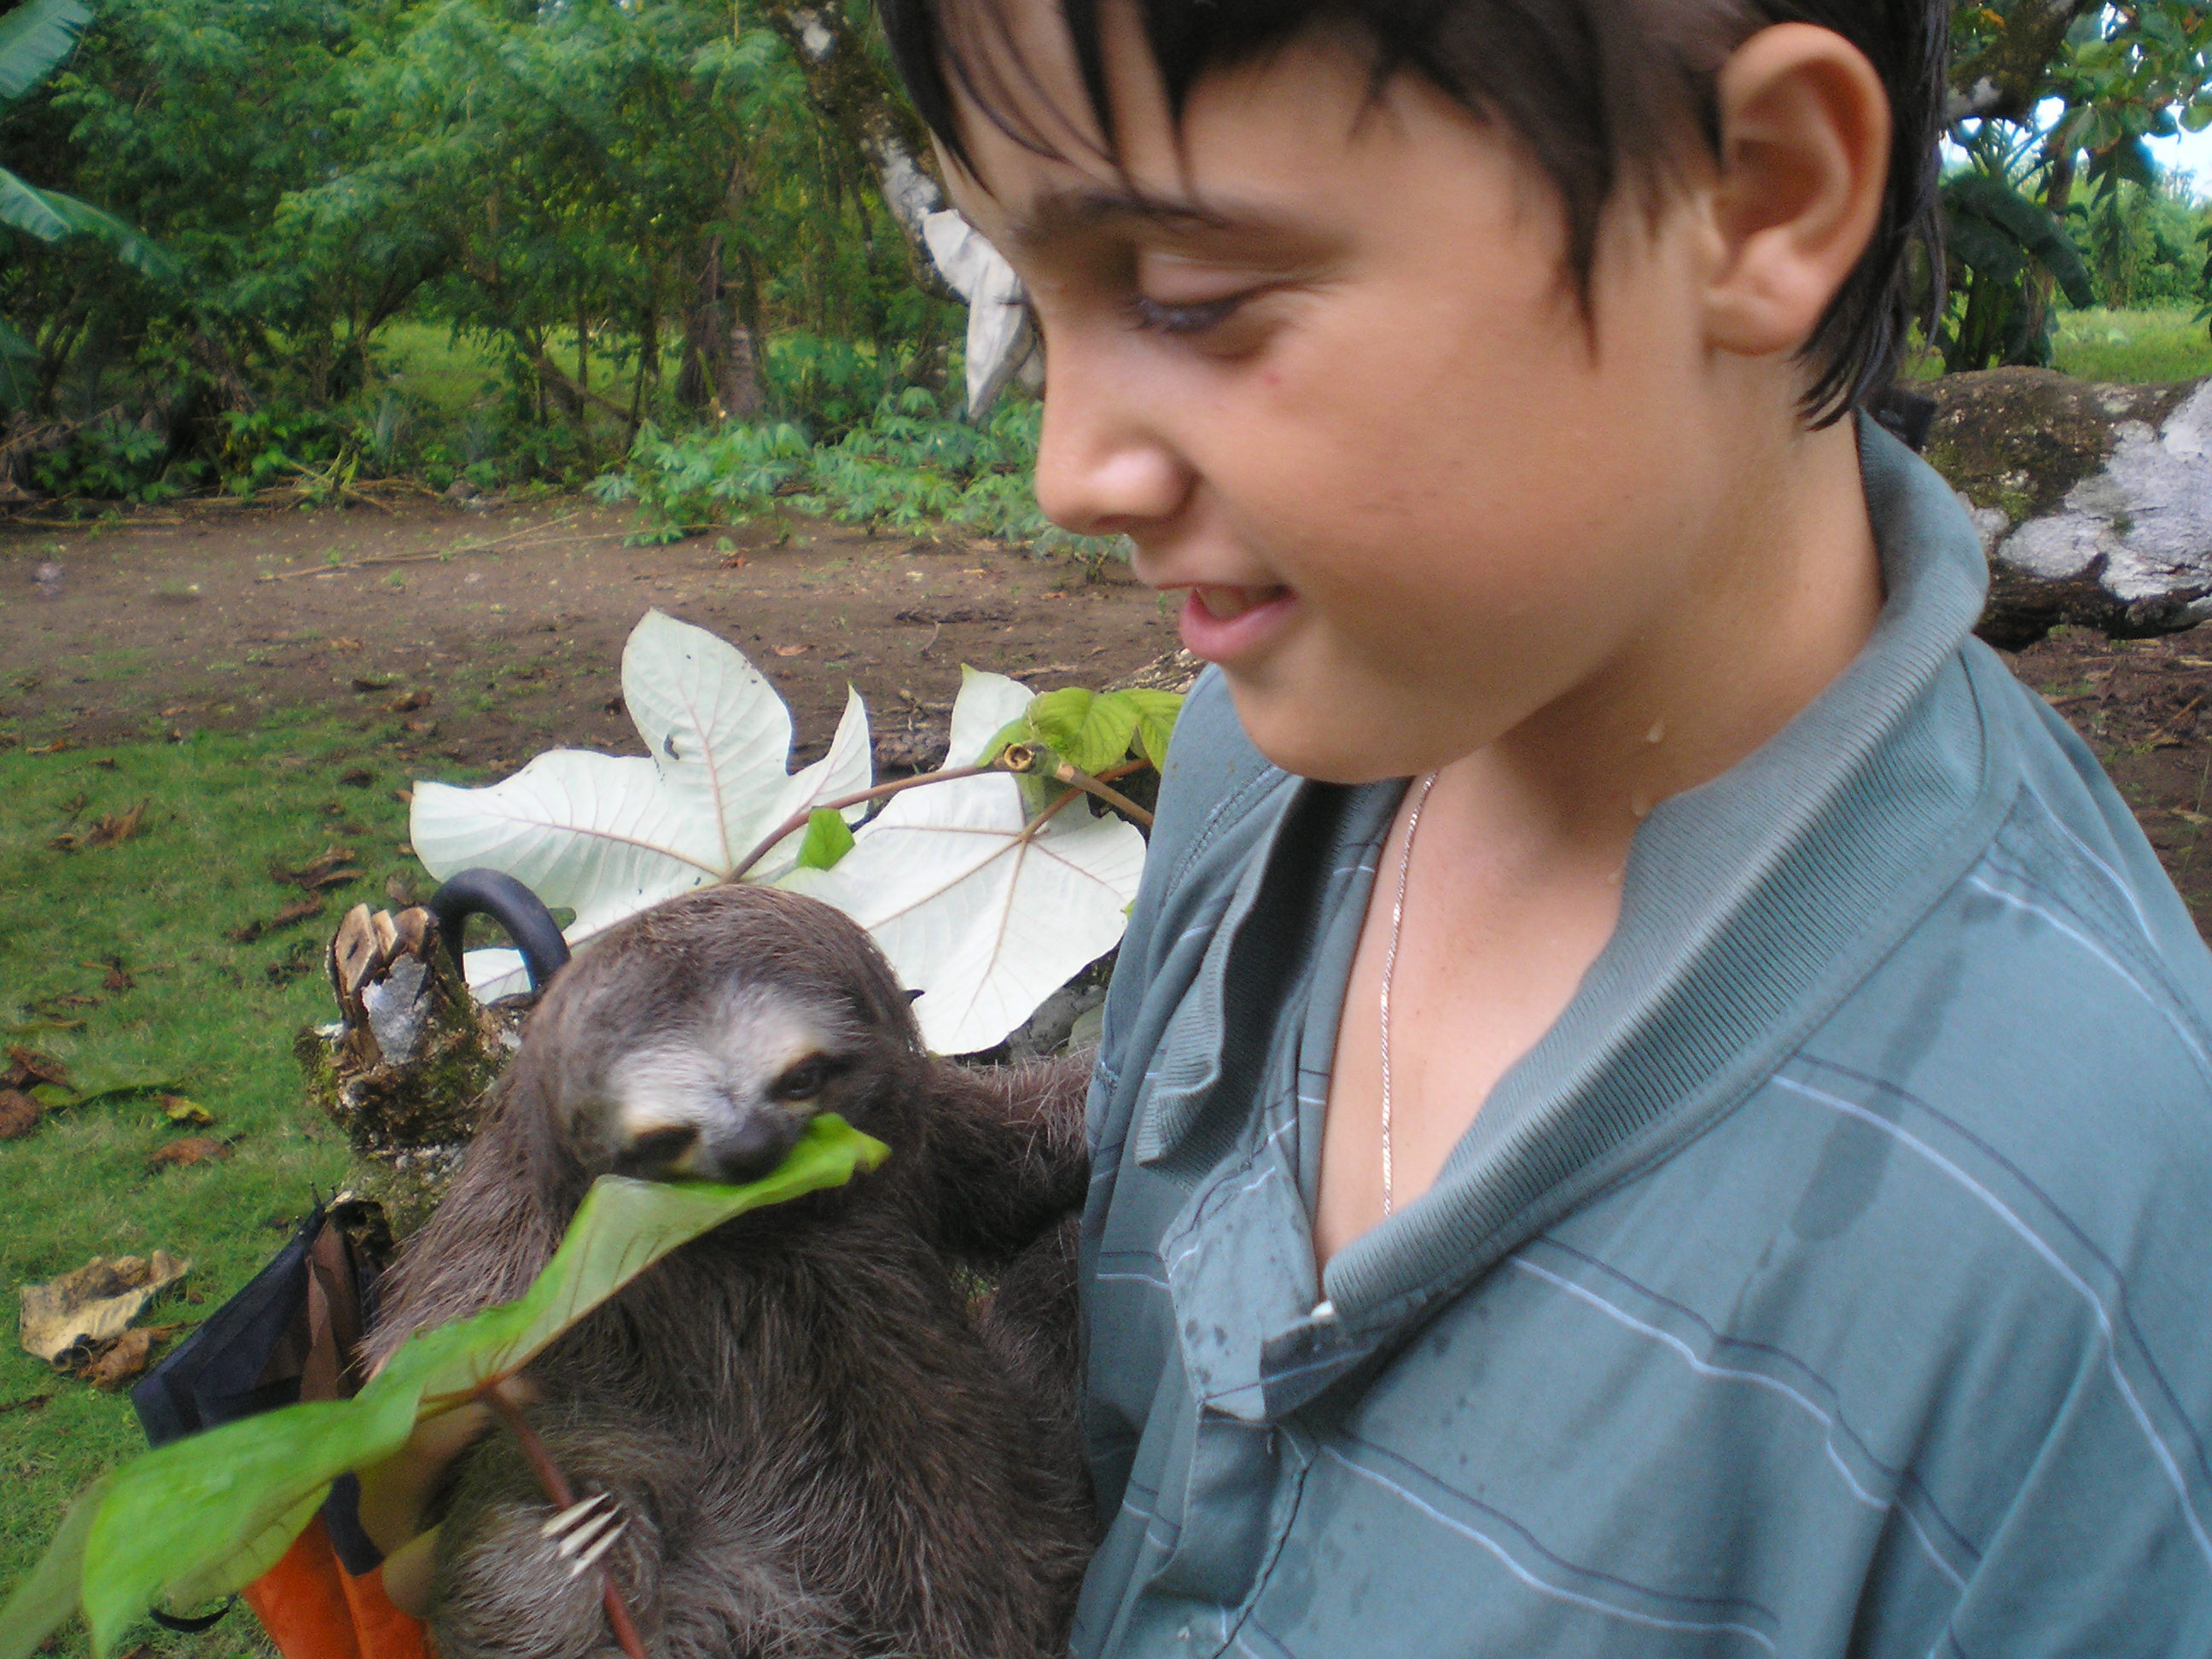 What's a Sloth Got That We Have Not? Fur Full of Beneficial Bacteria That Could Save Our Lives